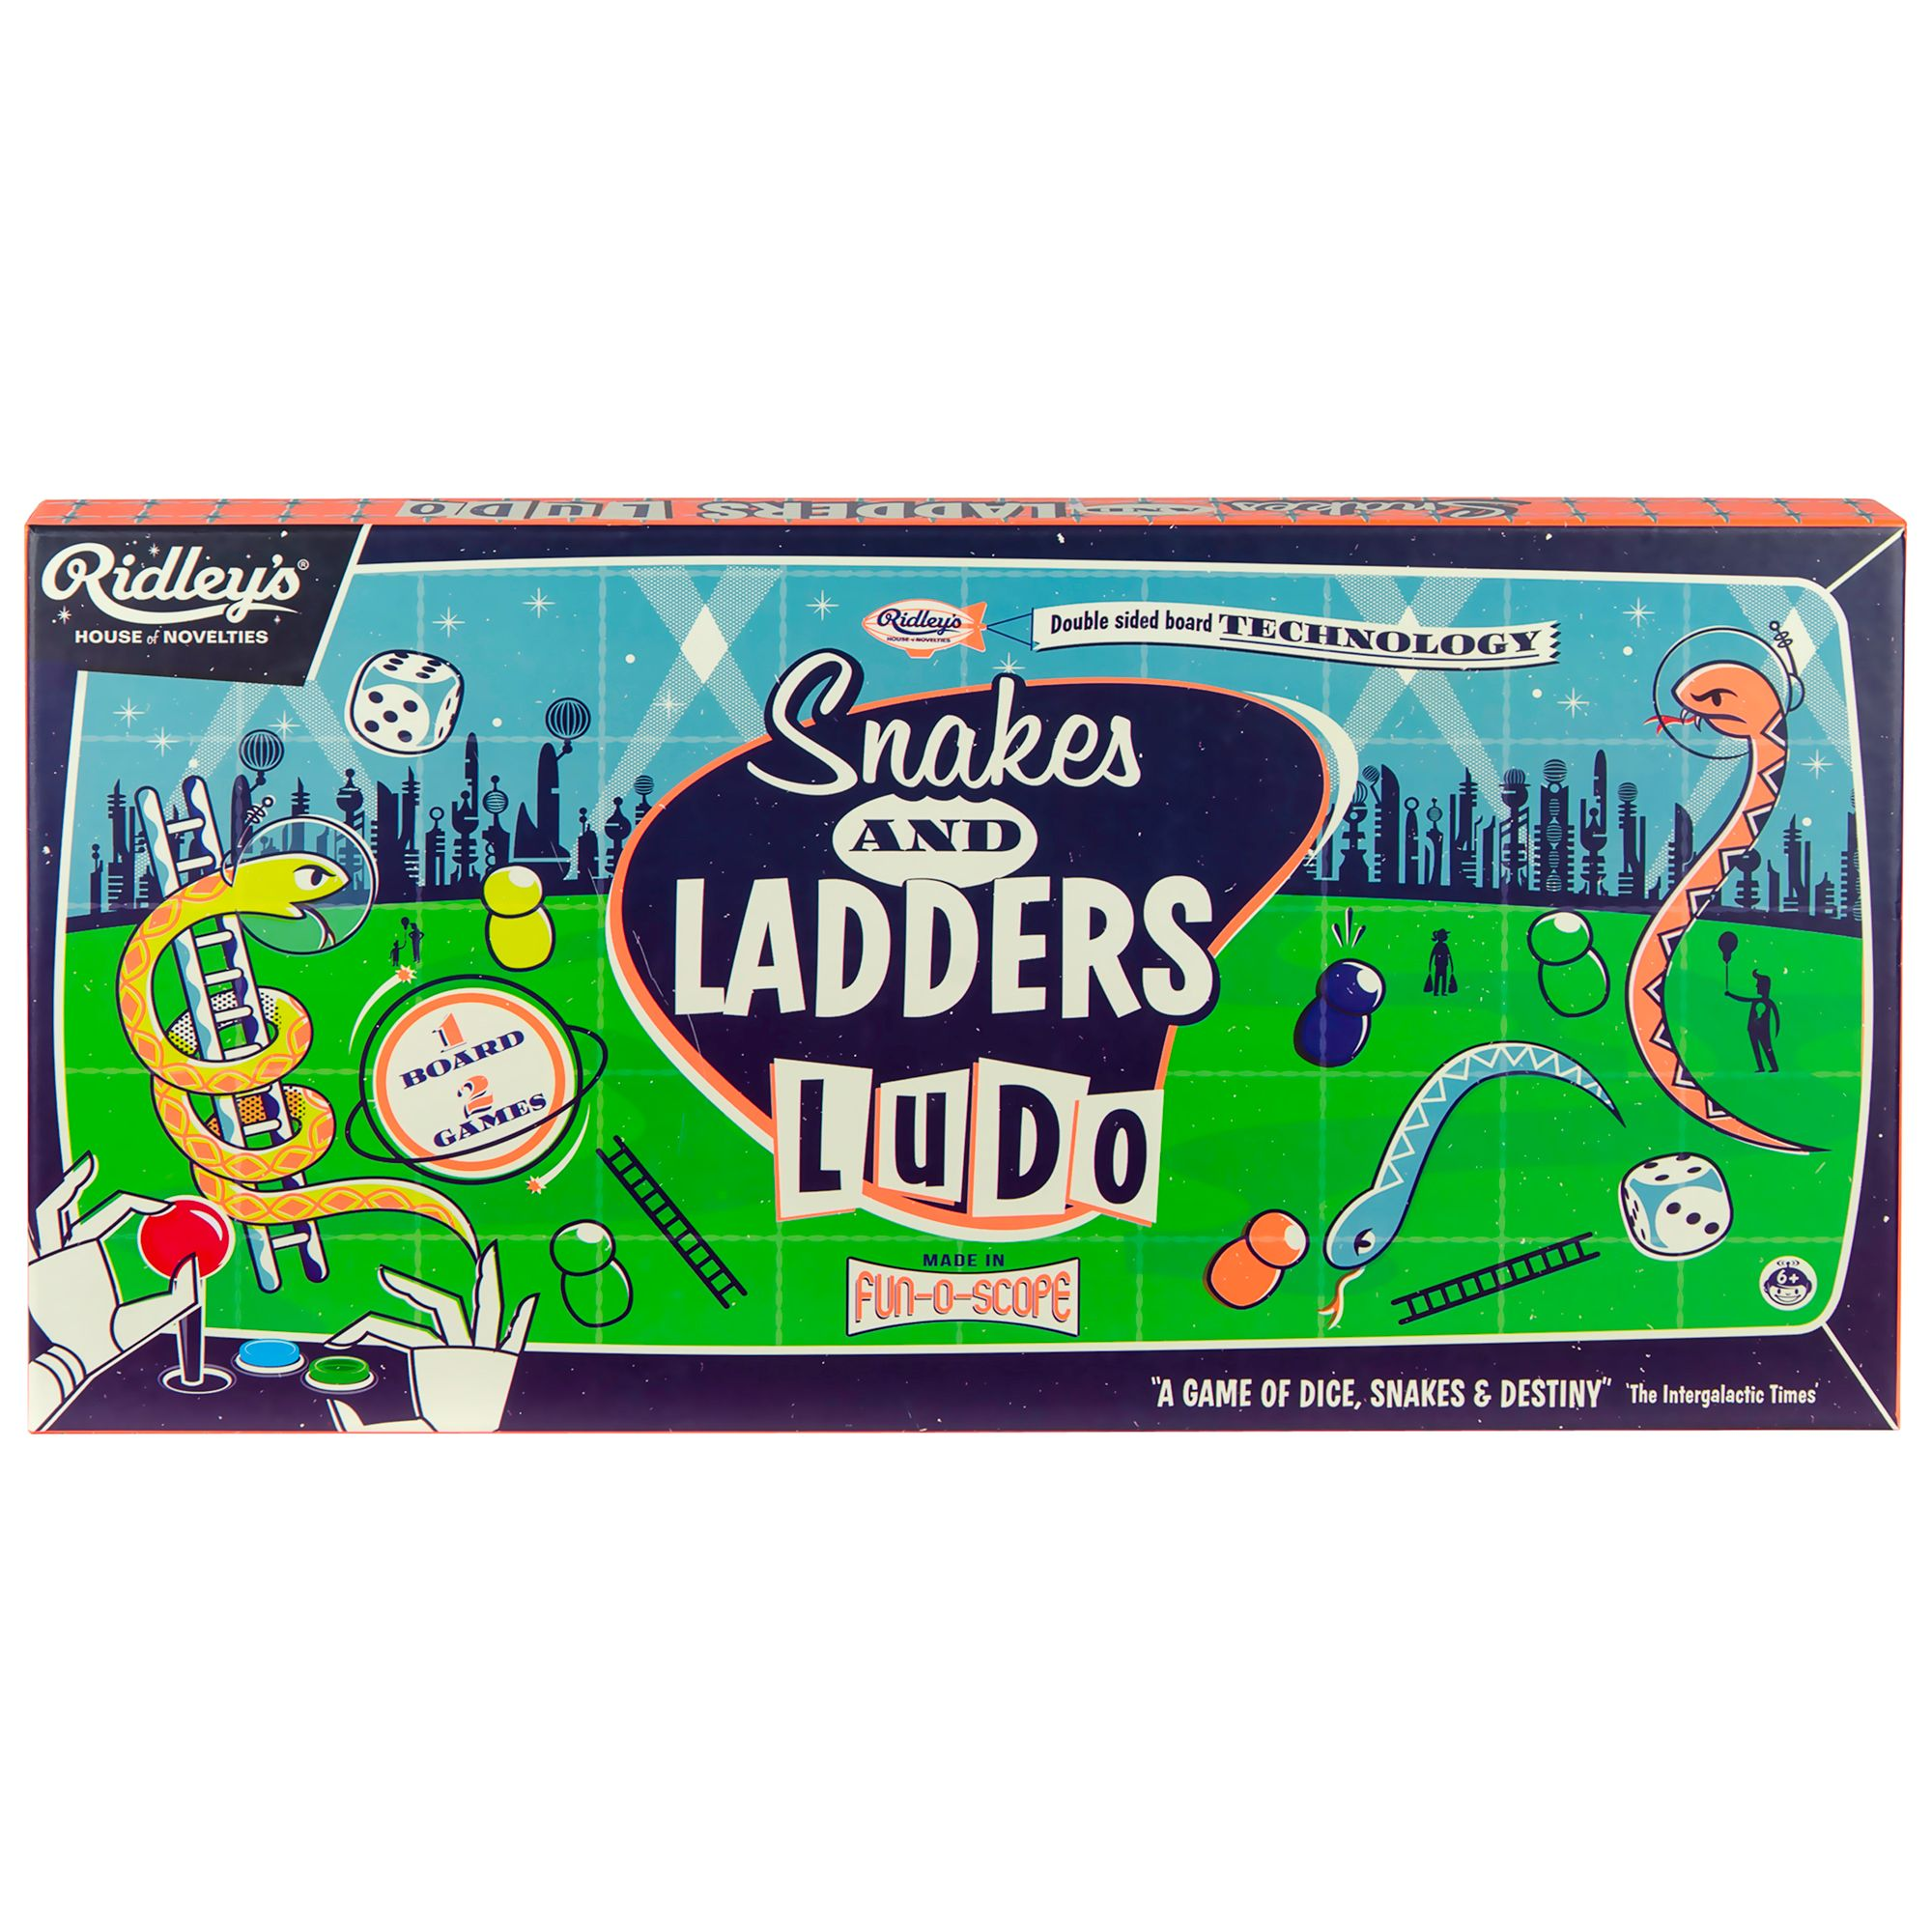 cf3431c27b9a Ridley's Snakes And Ladders Board Game at John Lewis & Partners